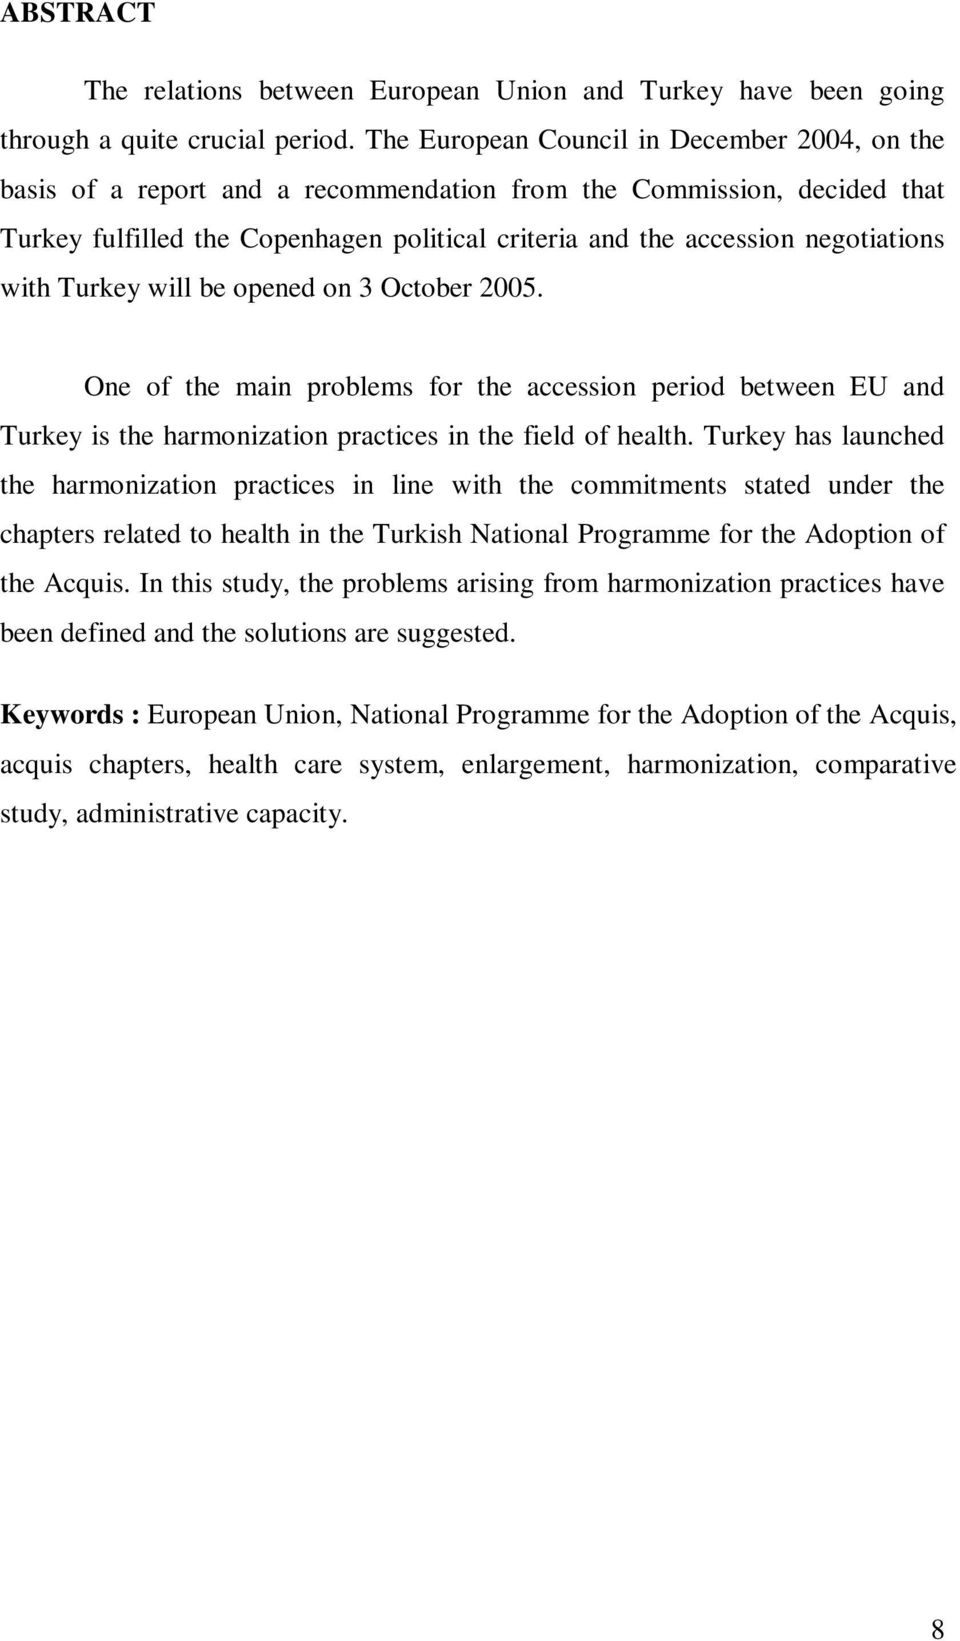 negotiations with Turkey will be opened on 3 October 2005. One of the main problems for the accession period between EU and Turkey is the harmonization practices in the field of health.